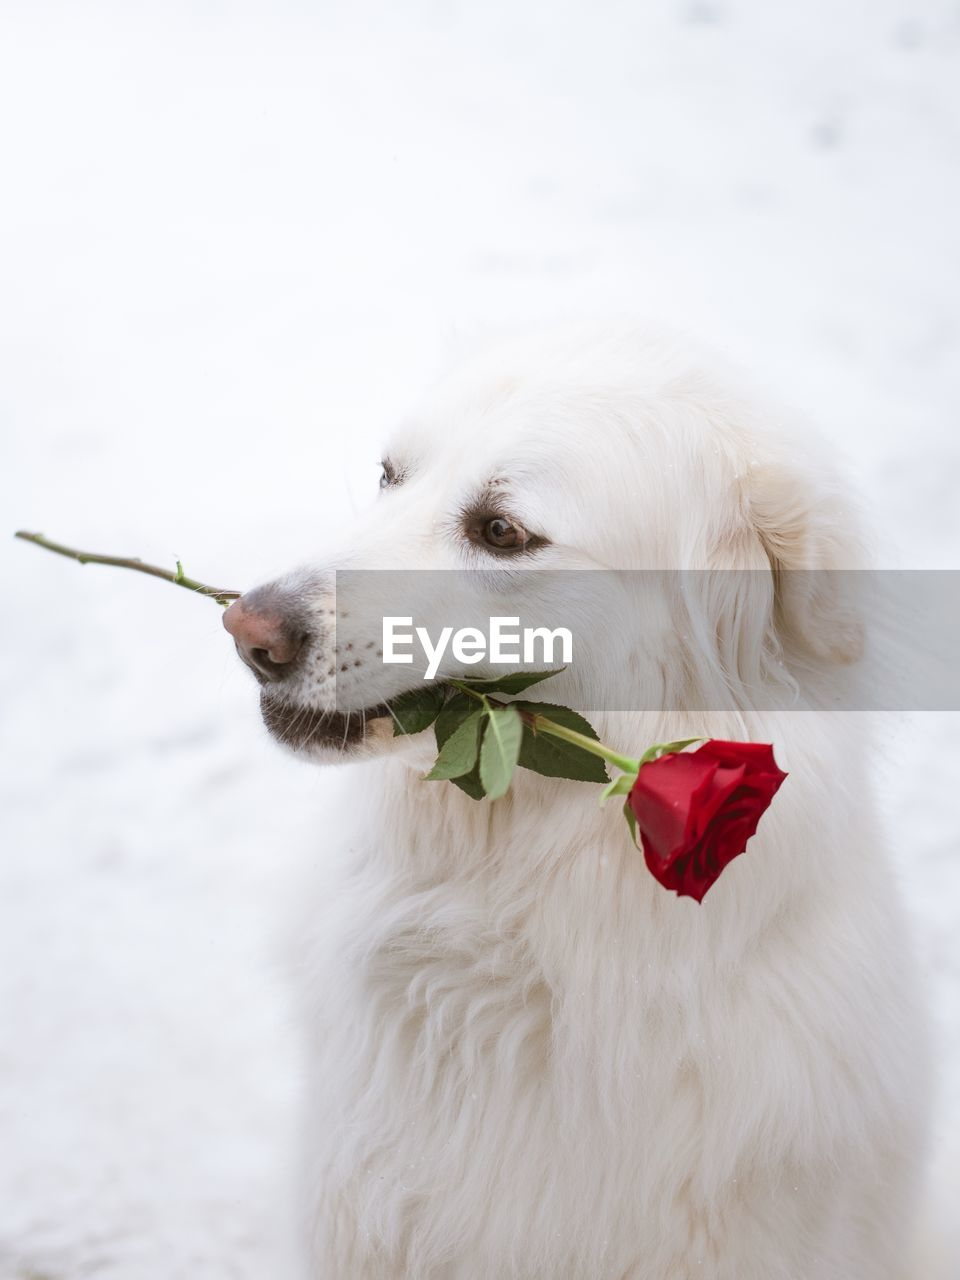 Close-up of dog carrying rose in mouth sitting outdoors during winter